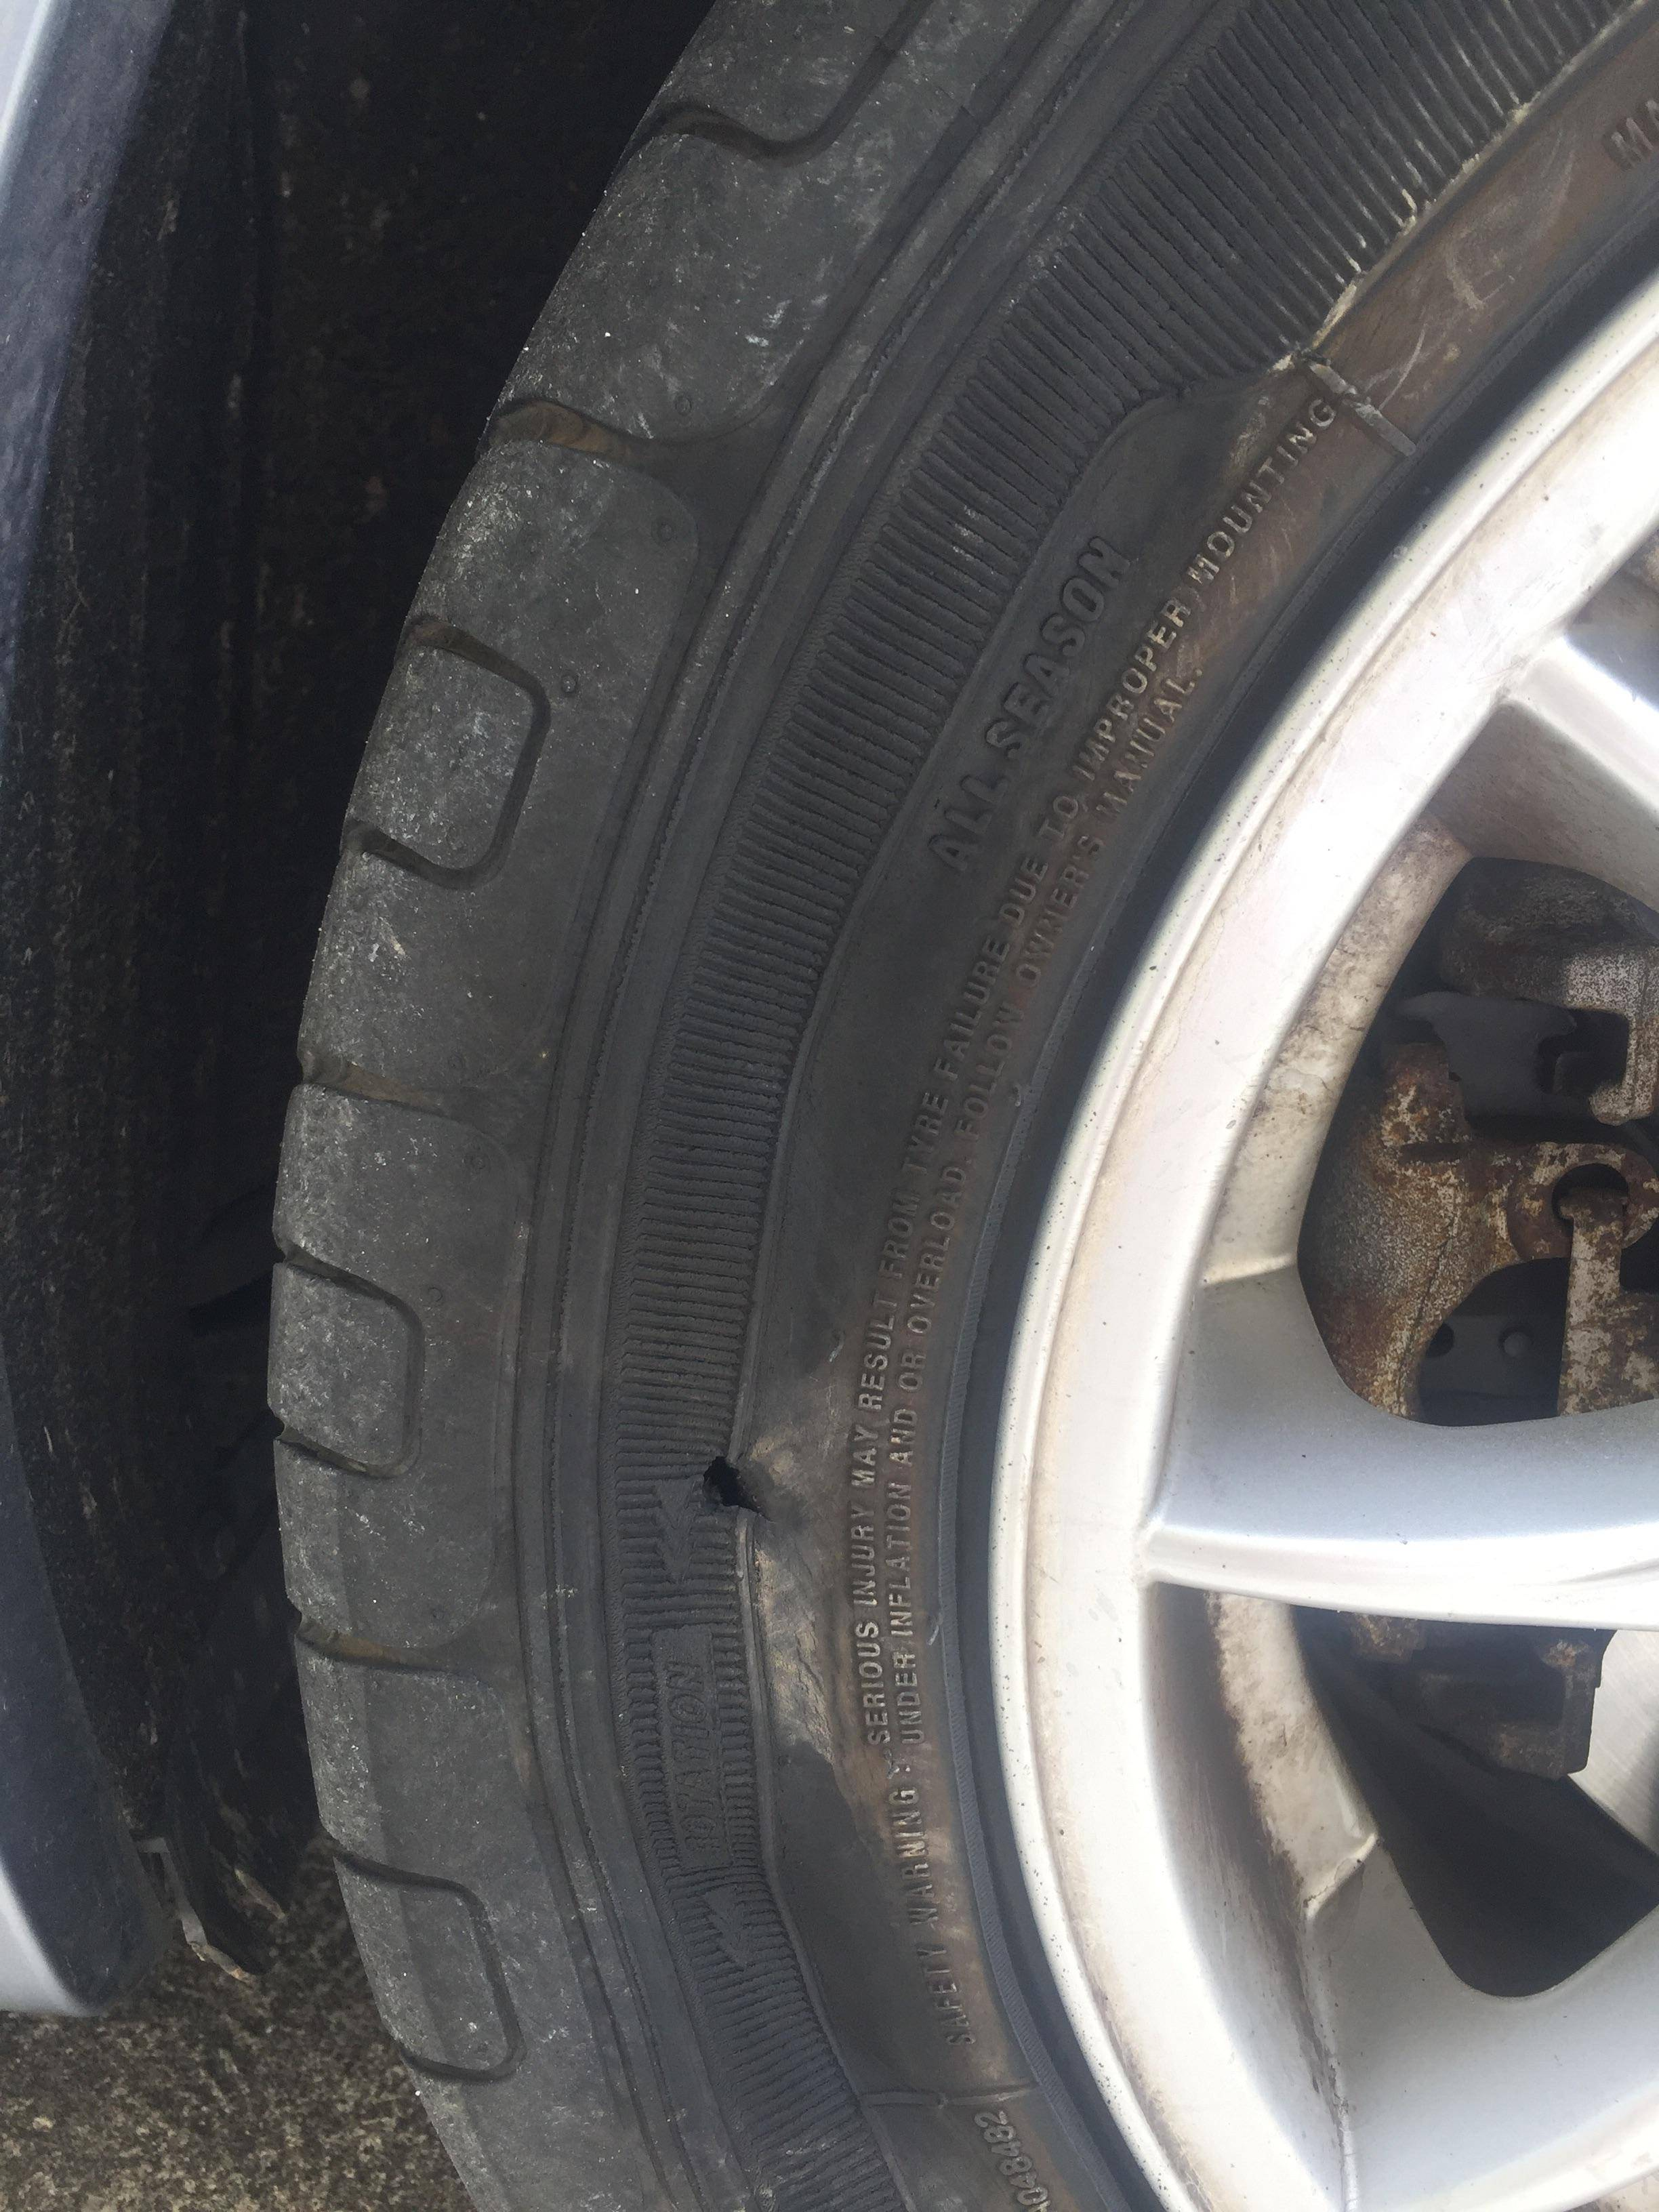 Tires Slashed Tyre Or Something Else Motor Vehicle